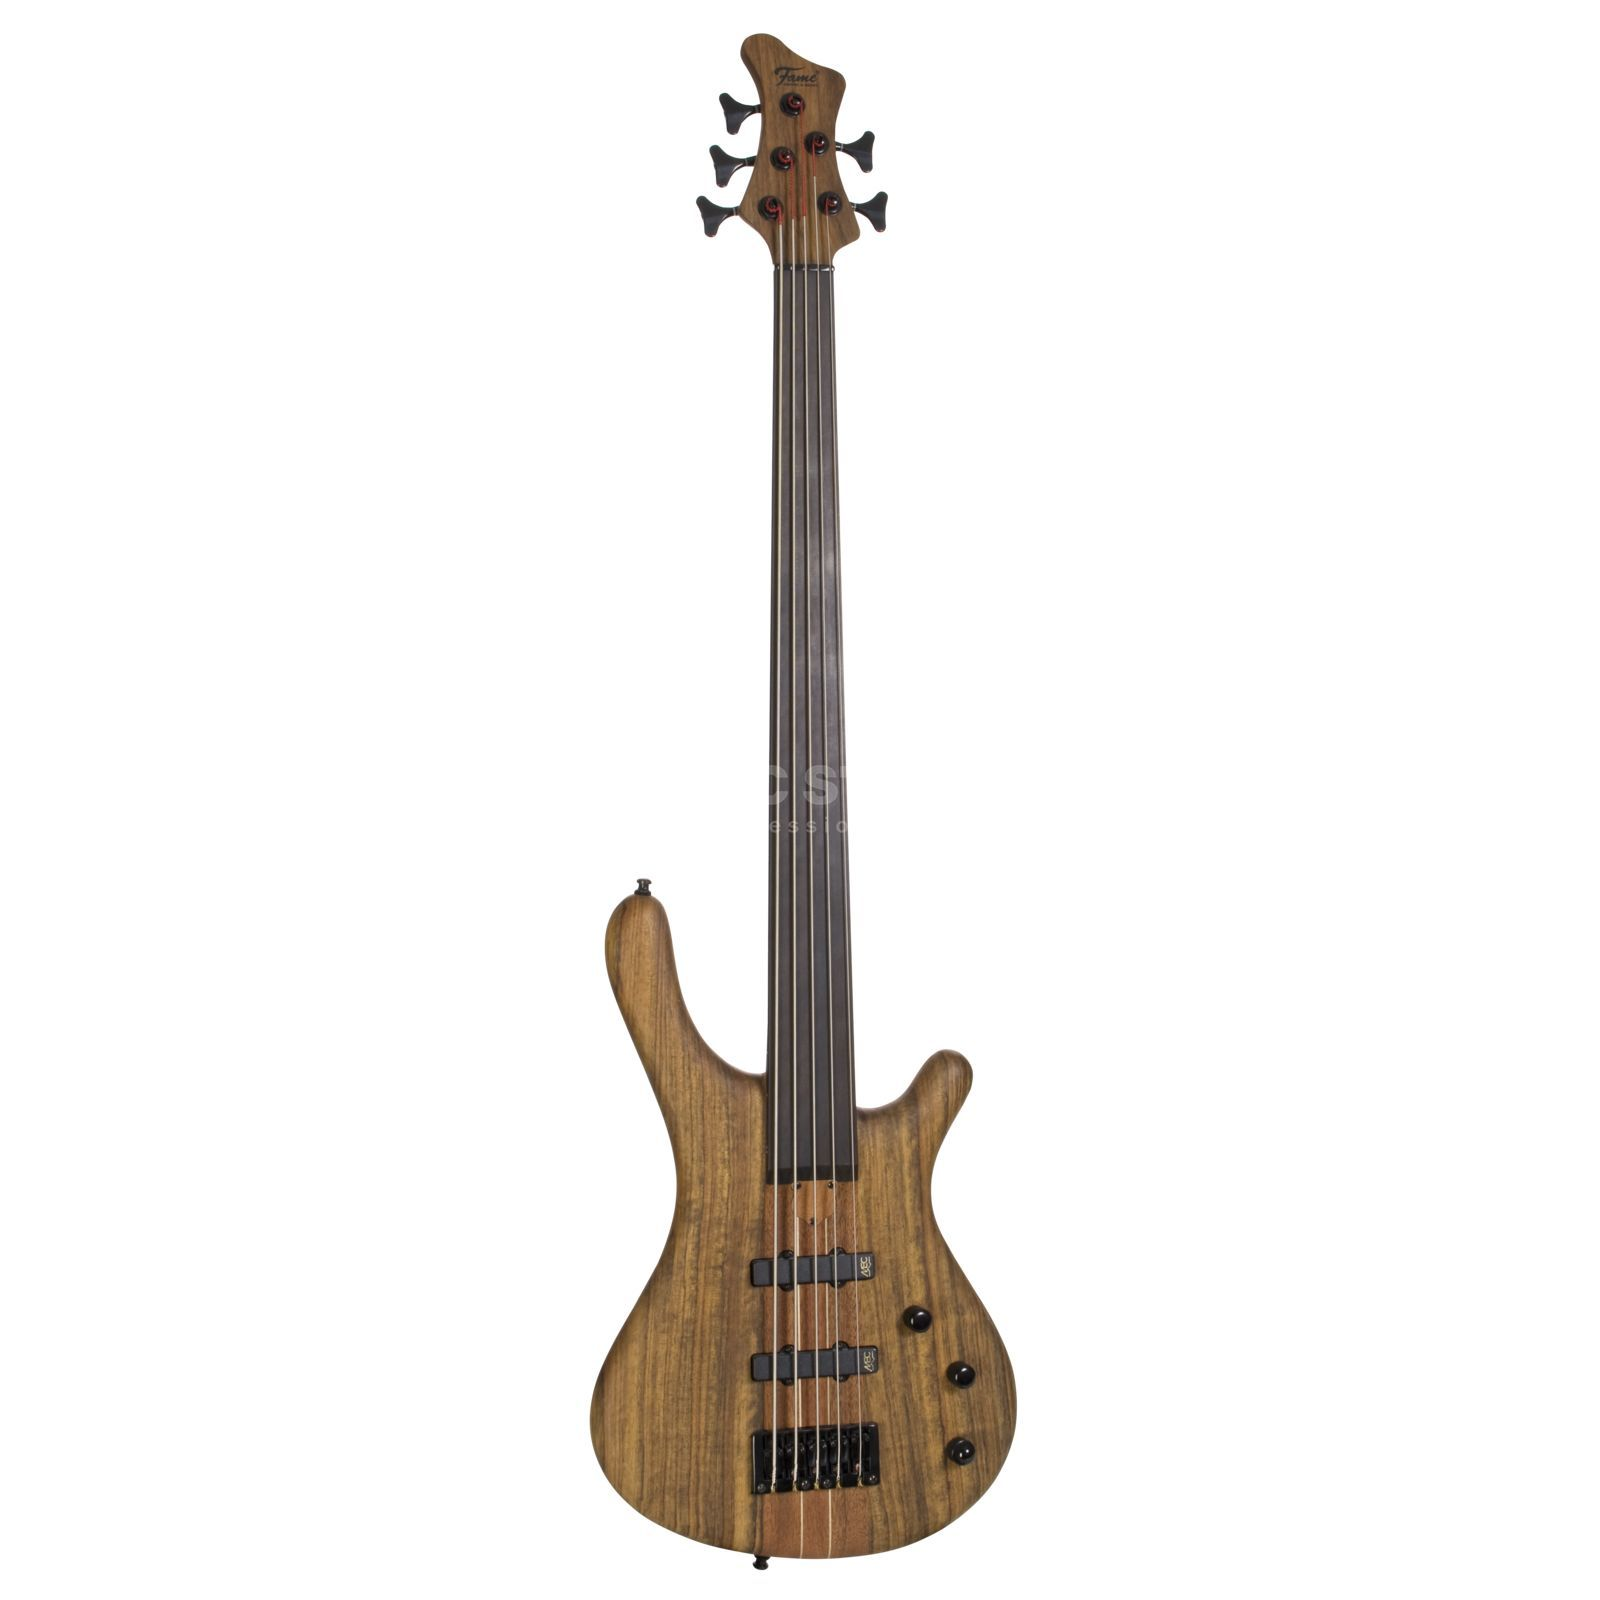 Fame Baphomet 5 NTB Fretless 5-Stri ng E-Bass Guitar, Natural Oil Product Image